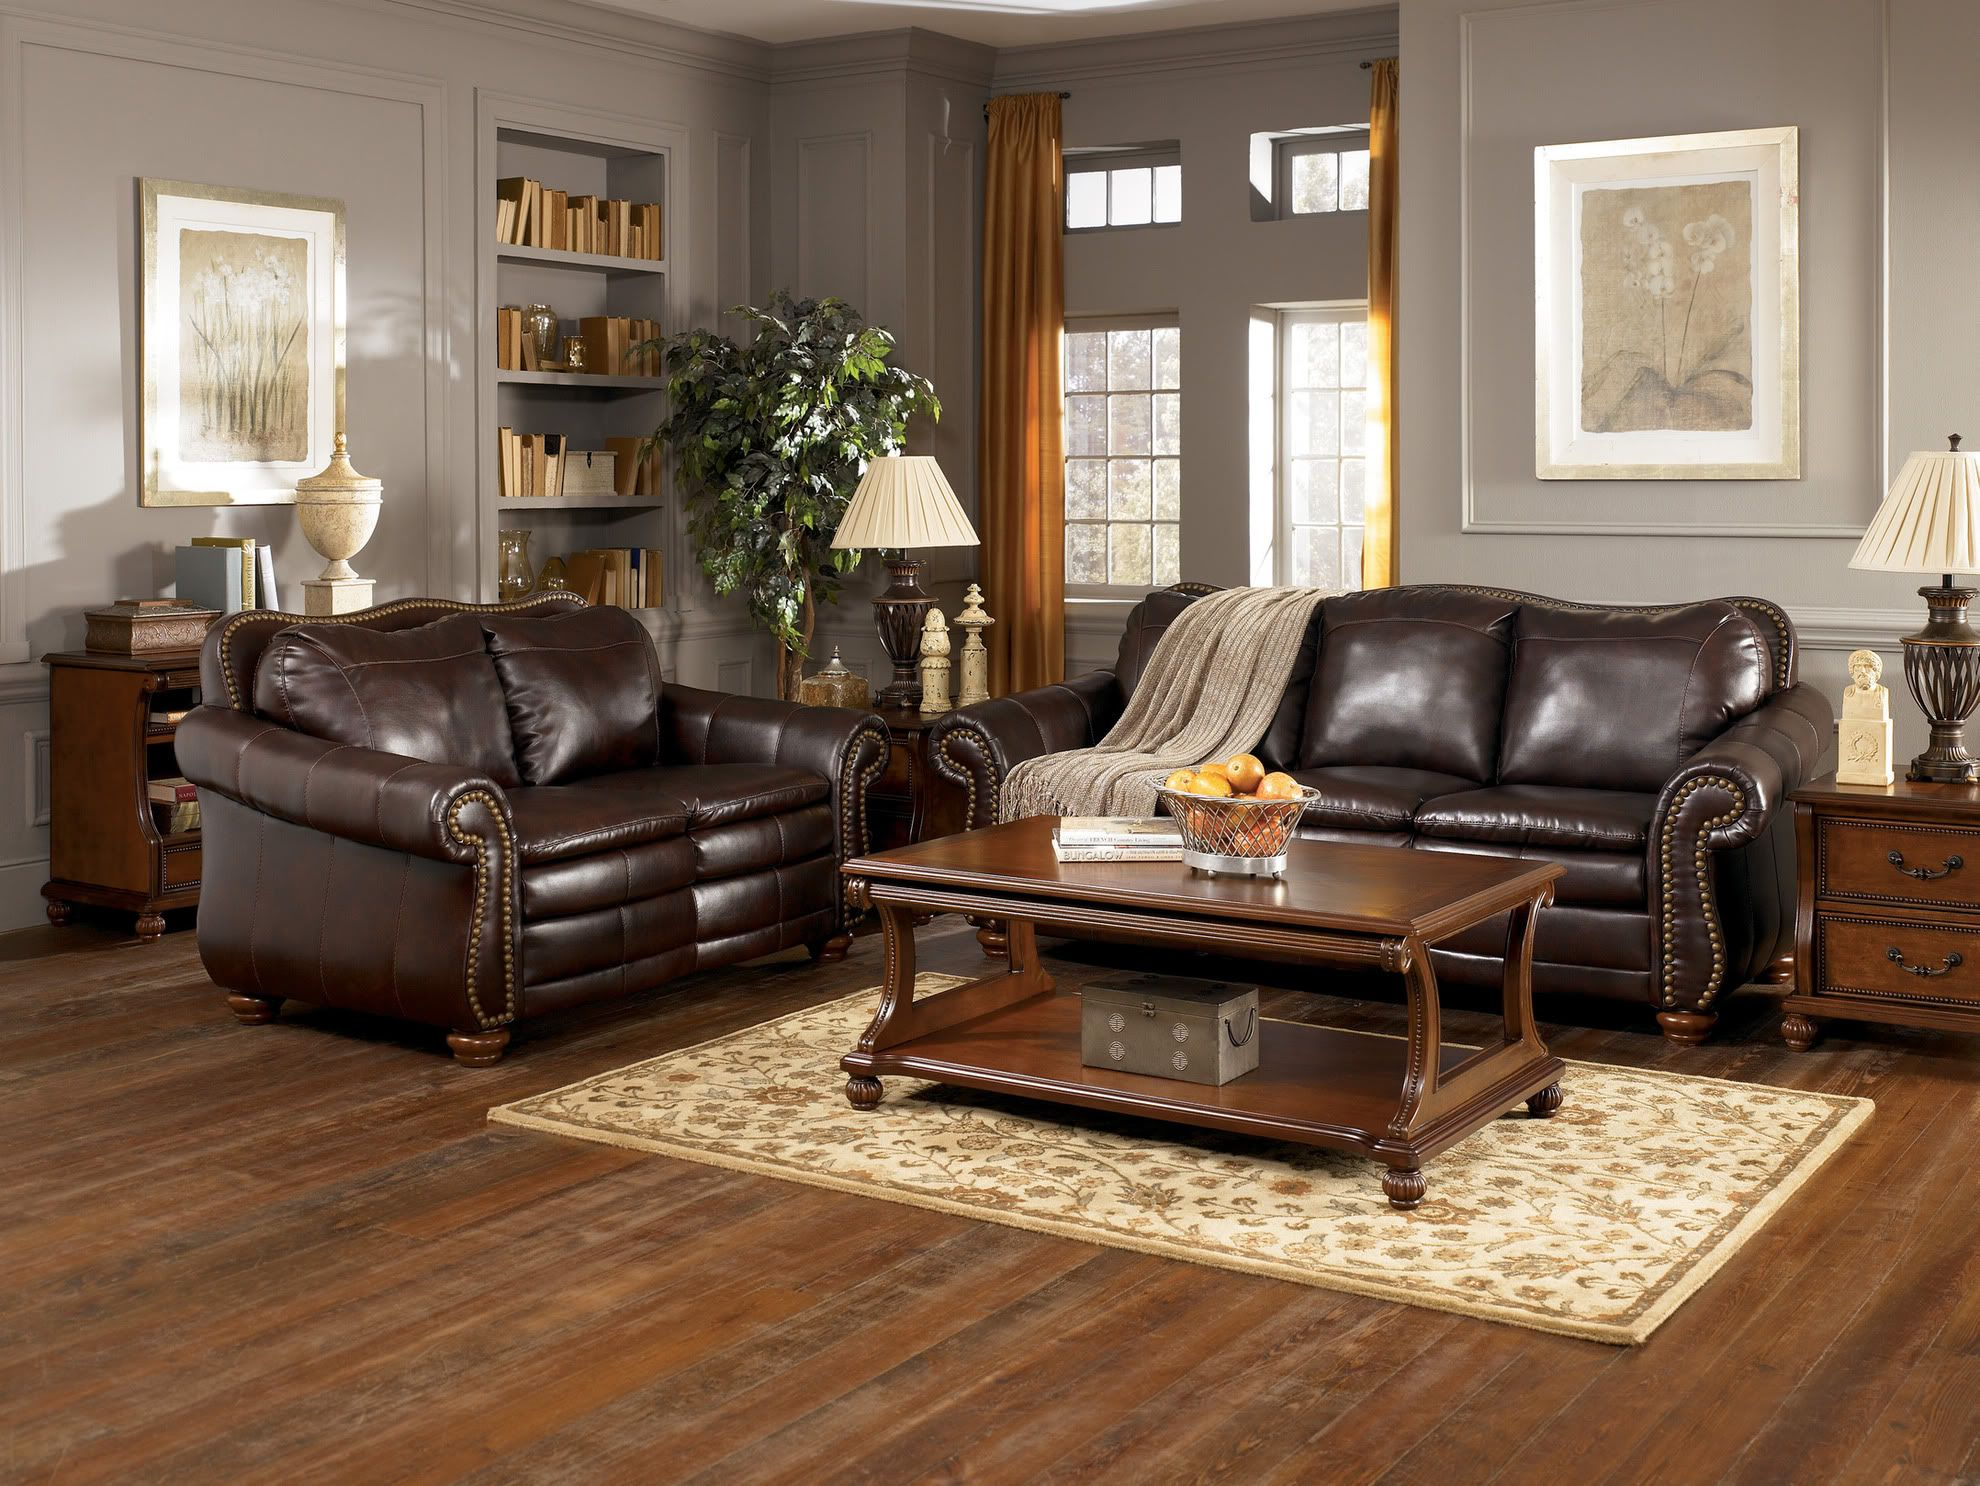 Fetching grey living room with brown furniture design for Decorating ideas for living rooms with brown leather furniture